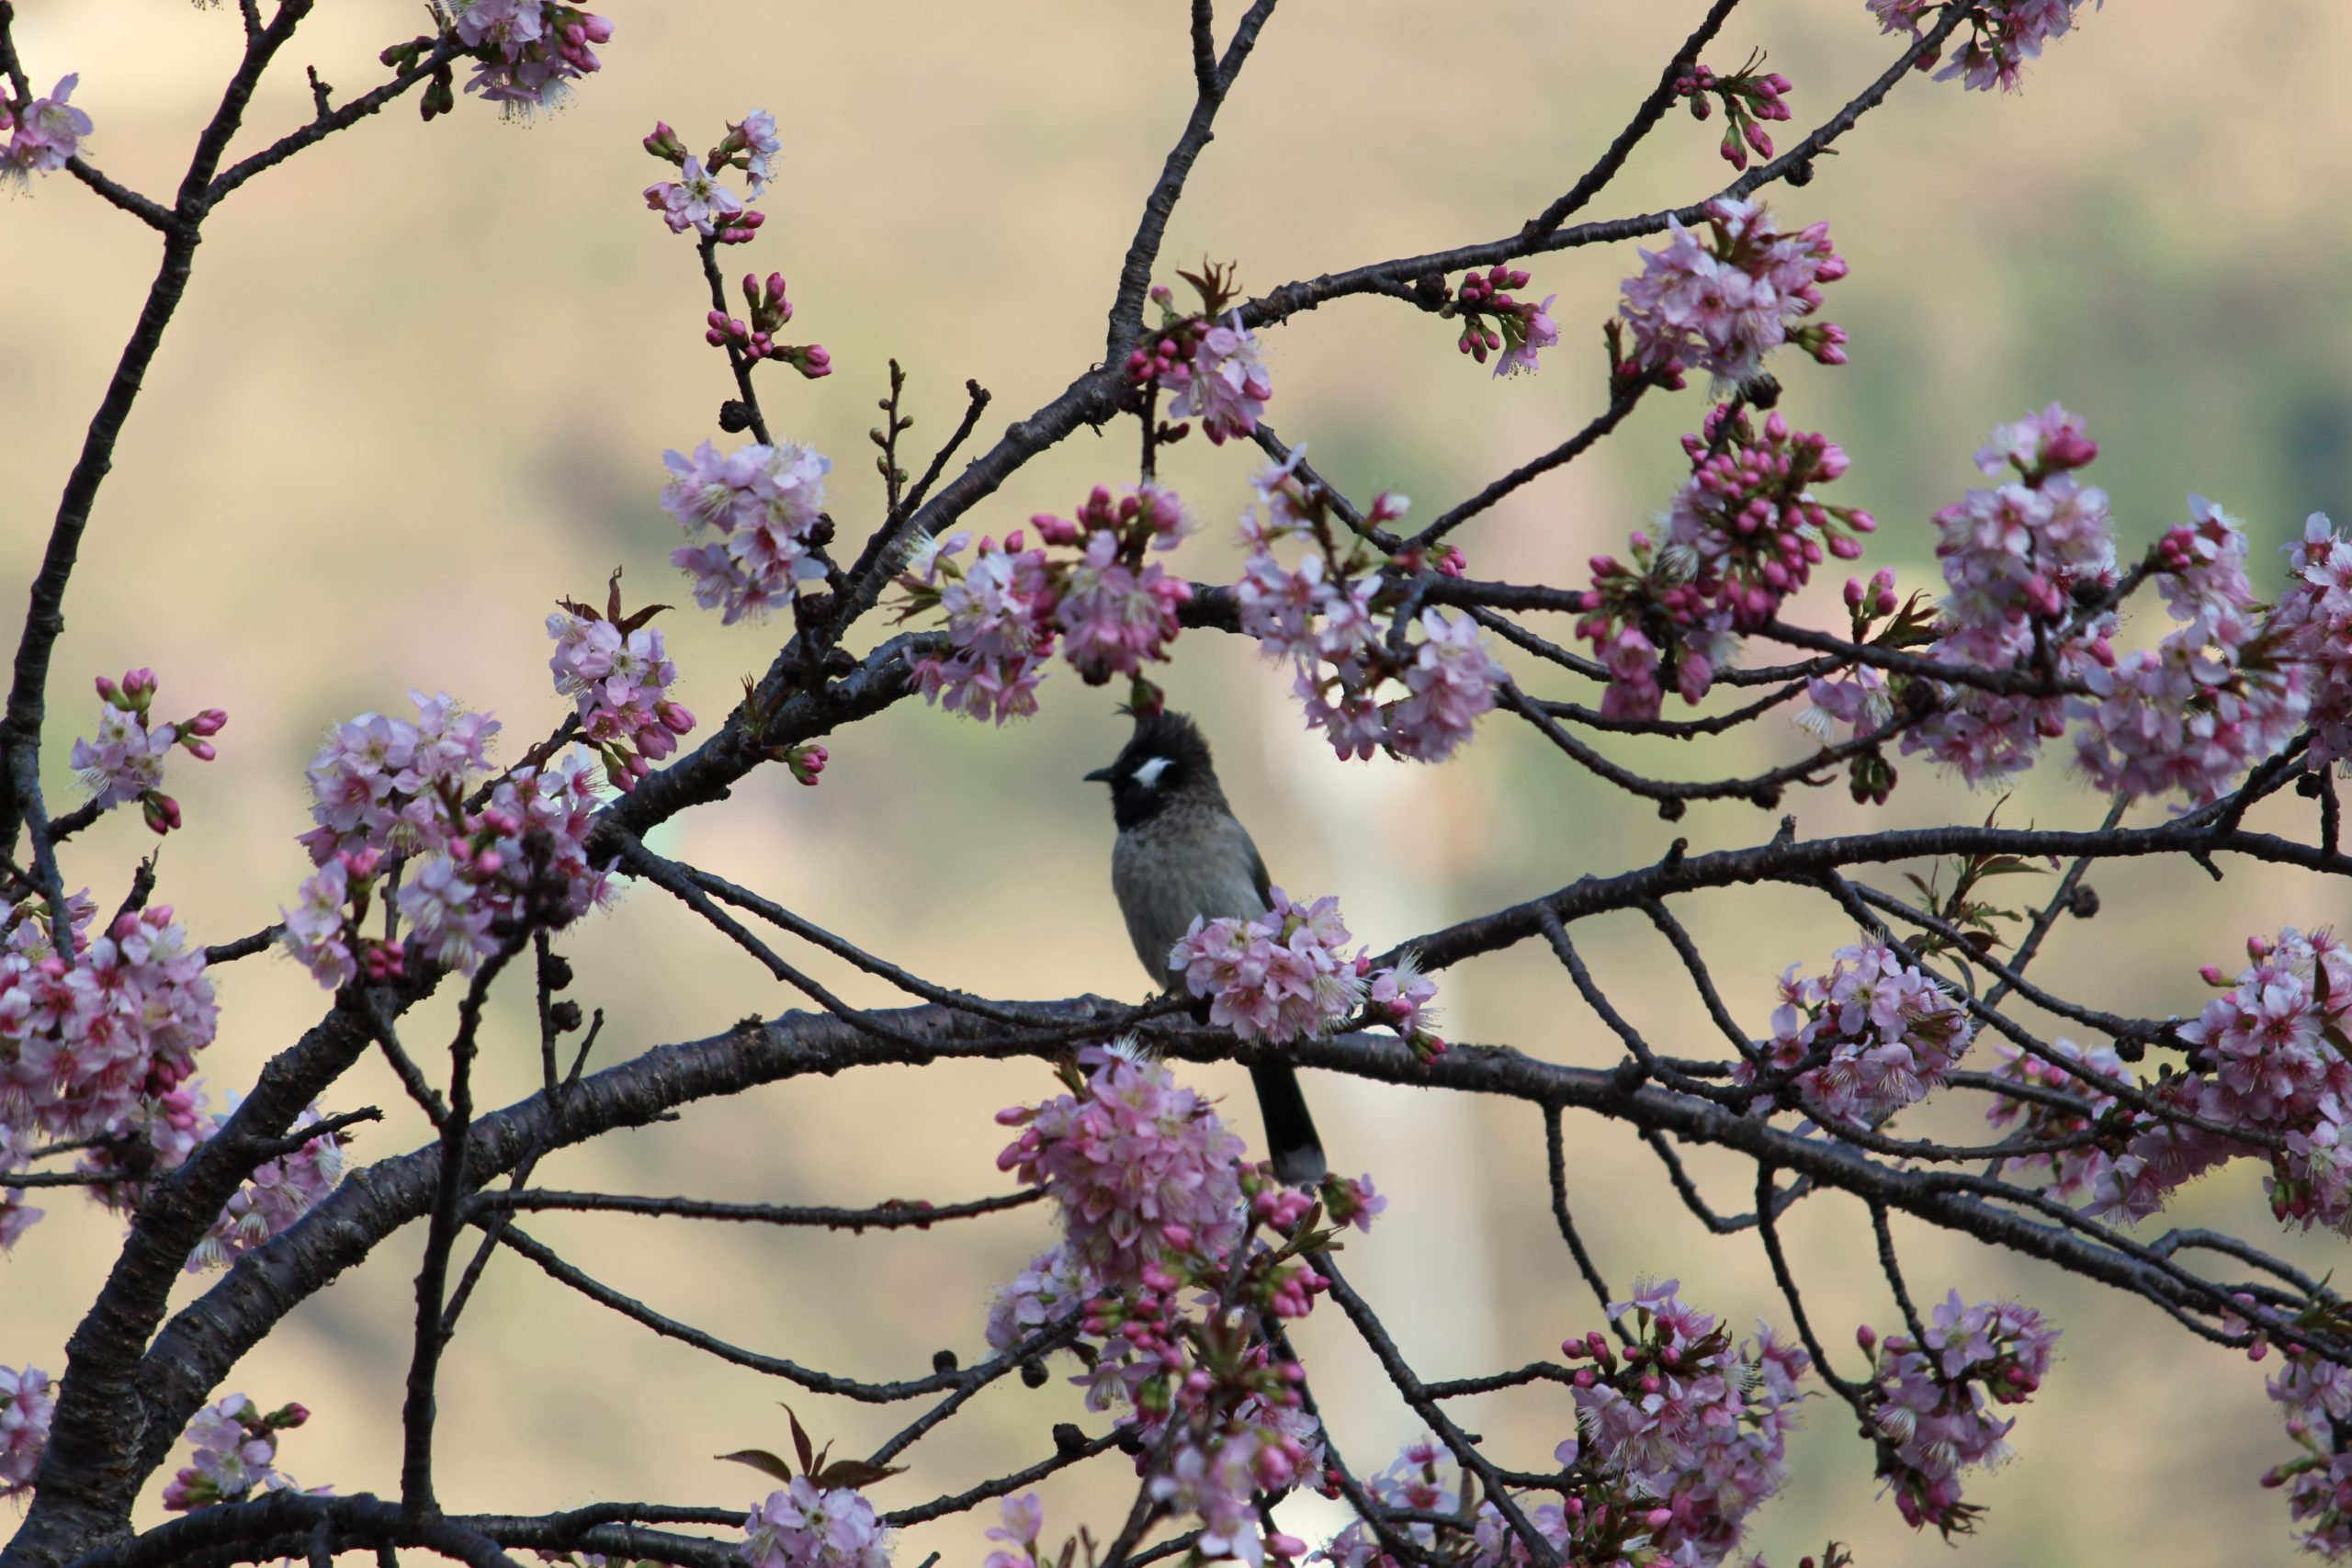 Bird enjoying on a full blooming tree